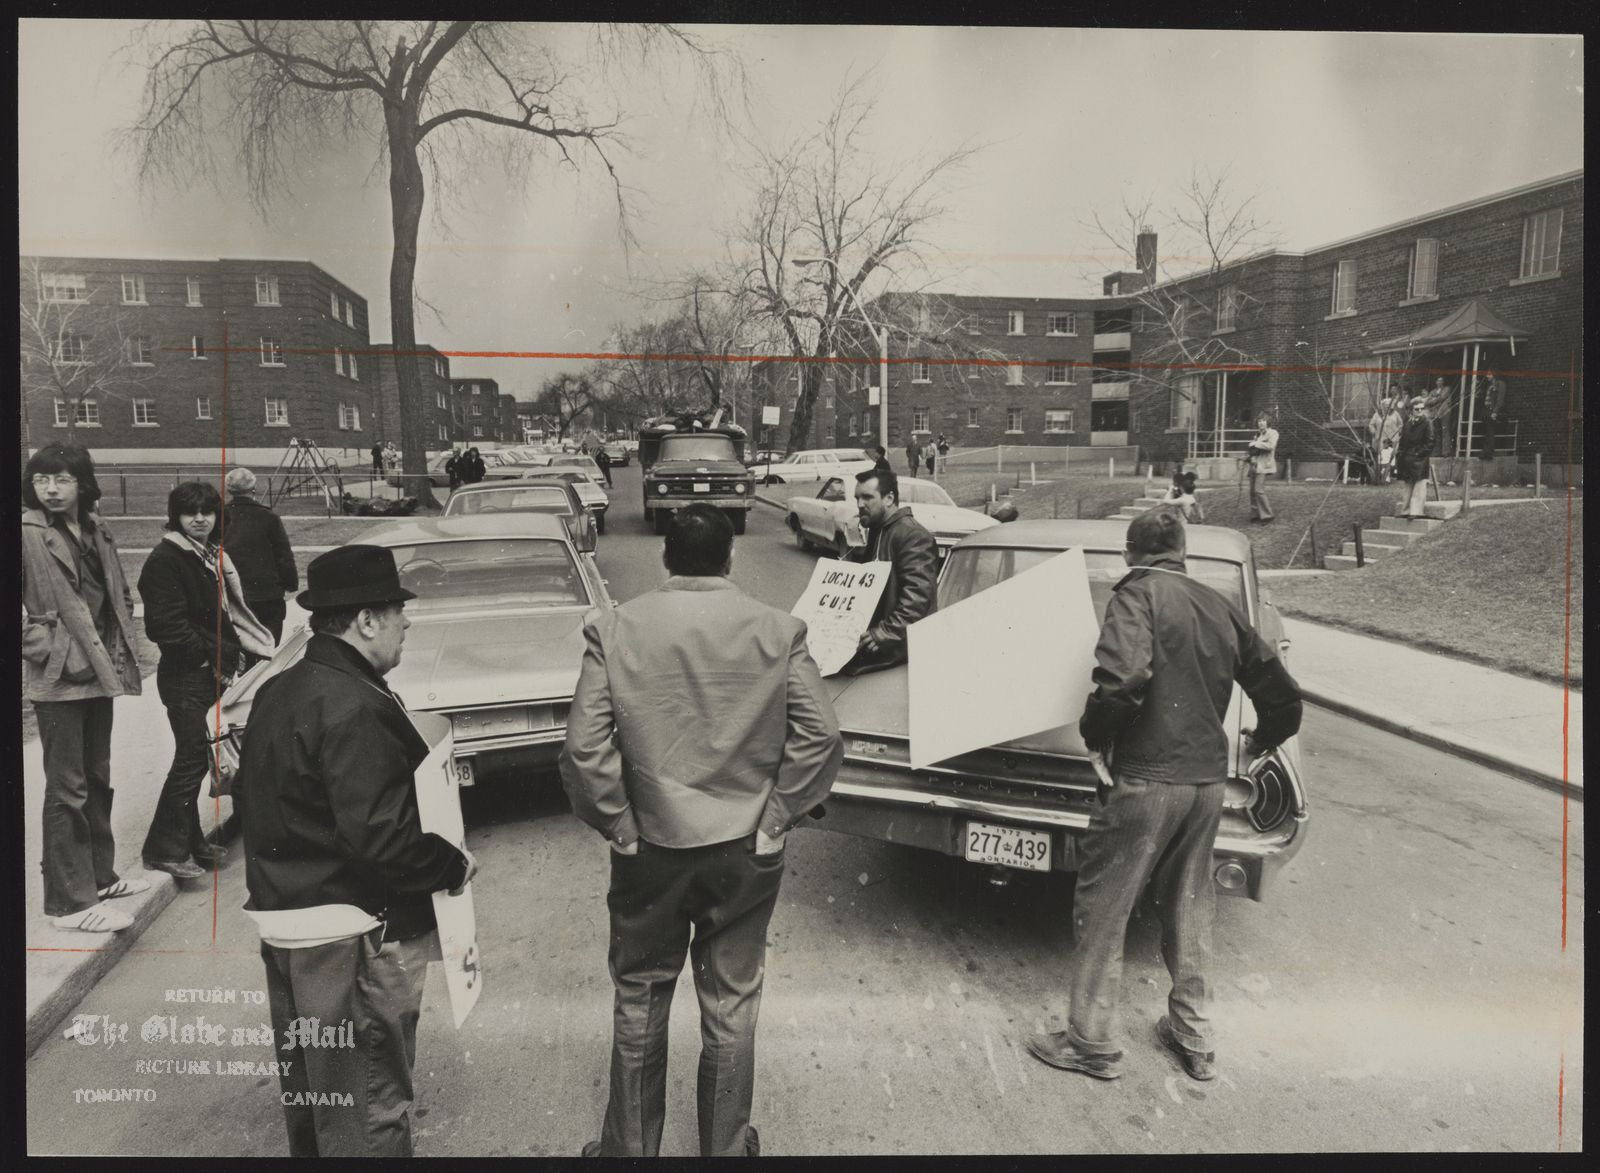 The notes transcribed from the back of this photograph are as follows: (striking workers blocked road with a car to garbage truck from Ontario Housing servicing Regent park)